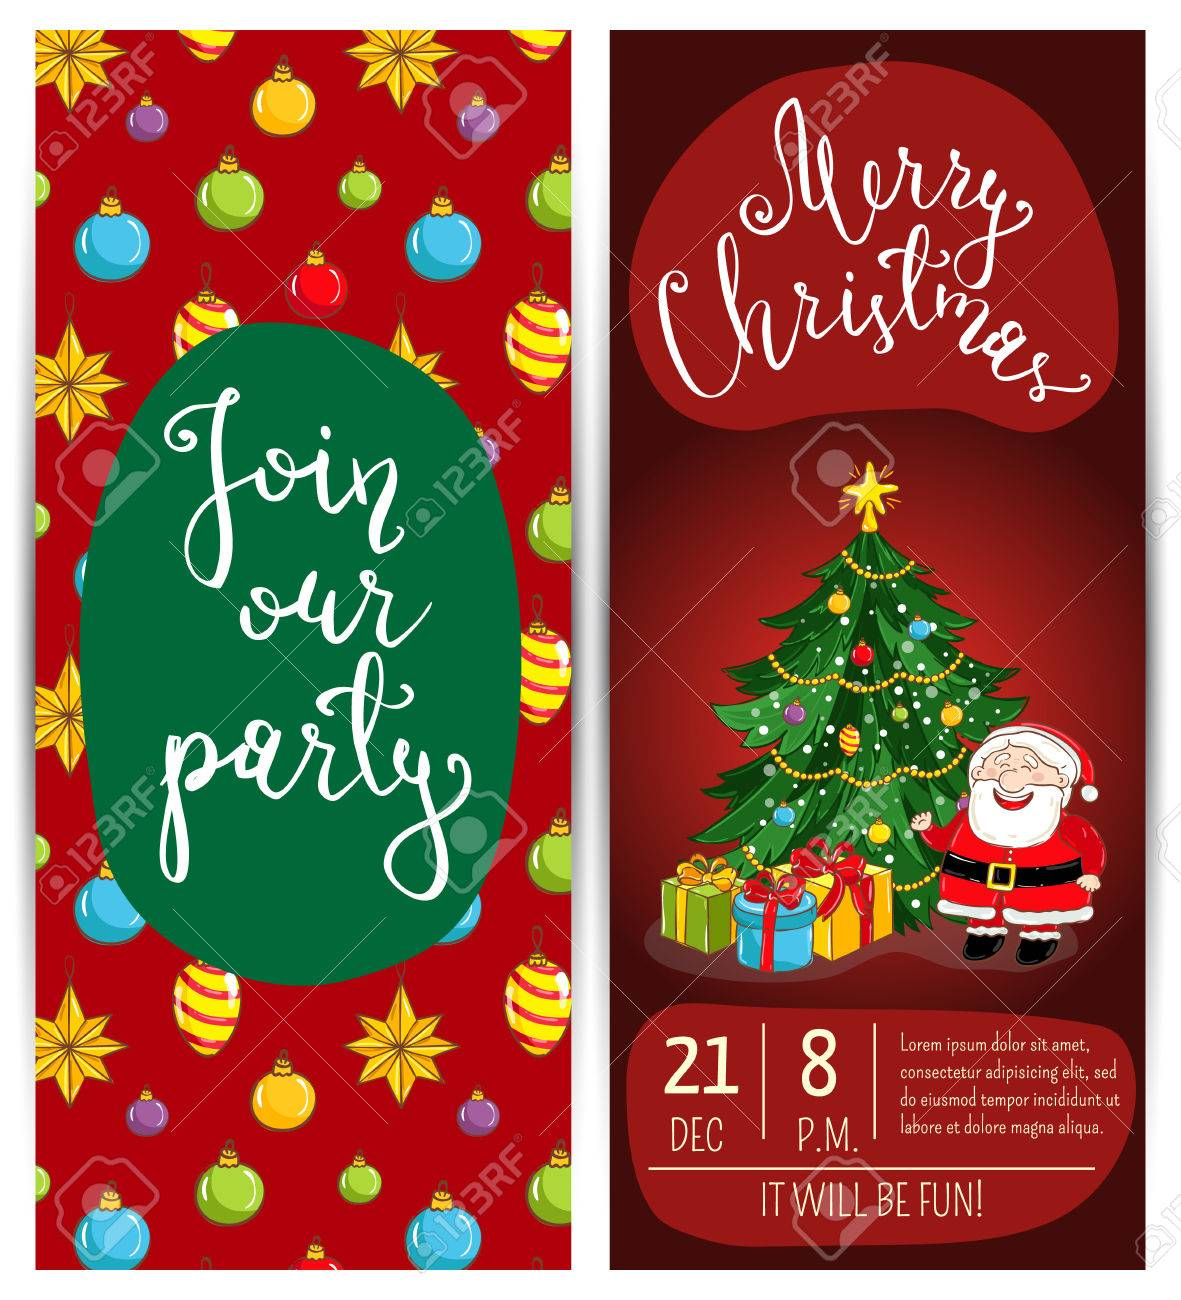 new year greetings xmas fun celebrating invitation on christmas party with date time and slogan funny santa wrapped gifts